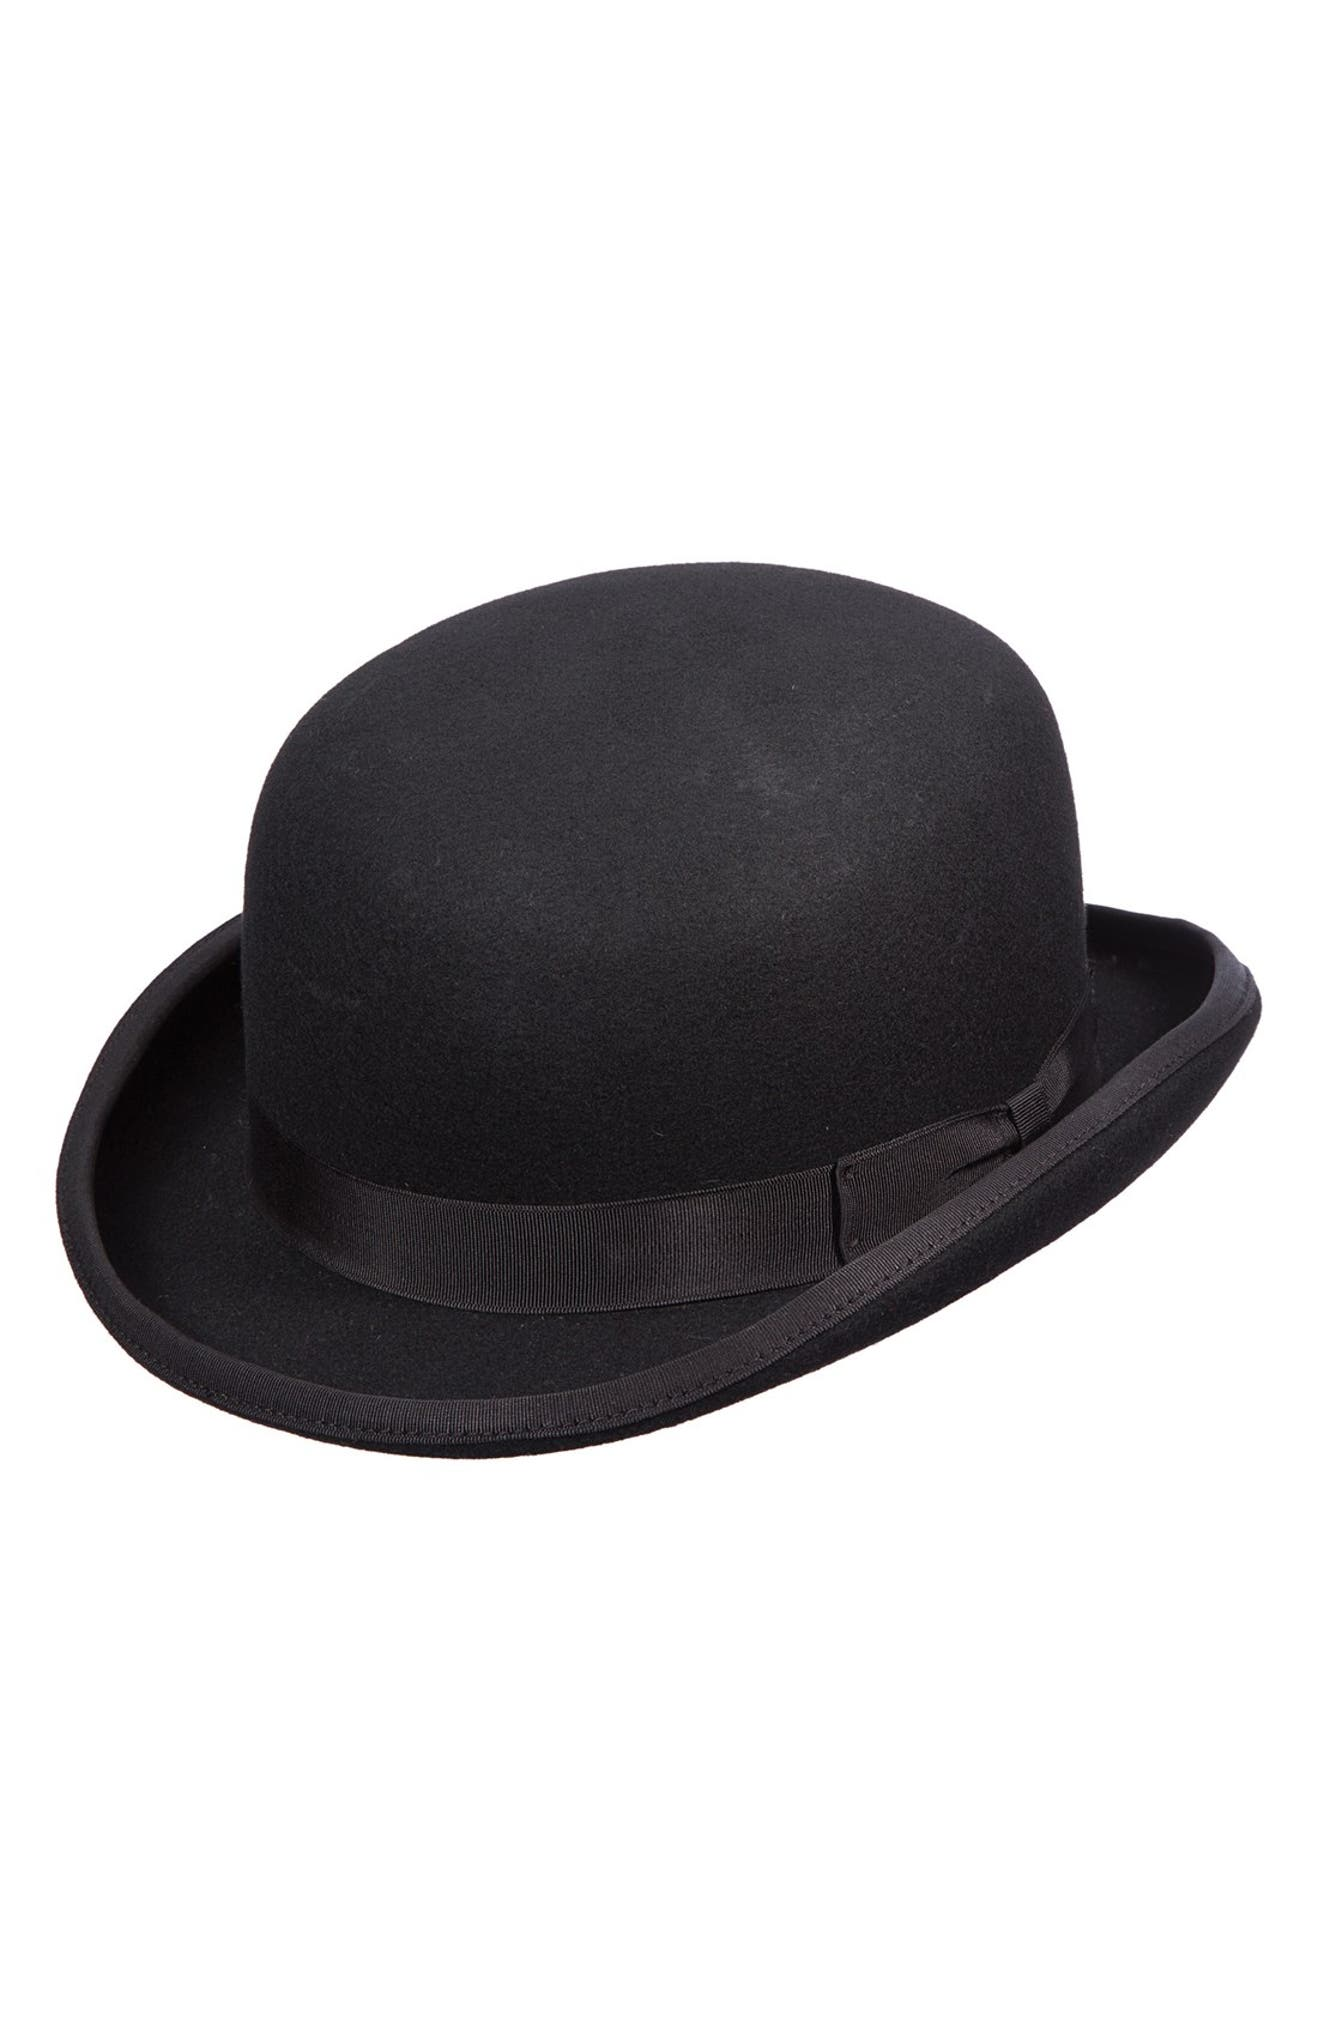 e1f2a11915f Bowler Hats For Sale London